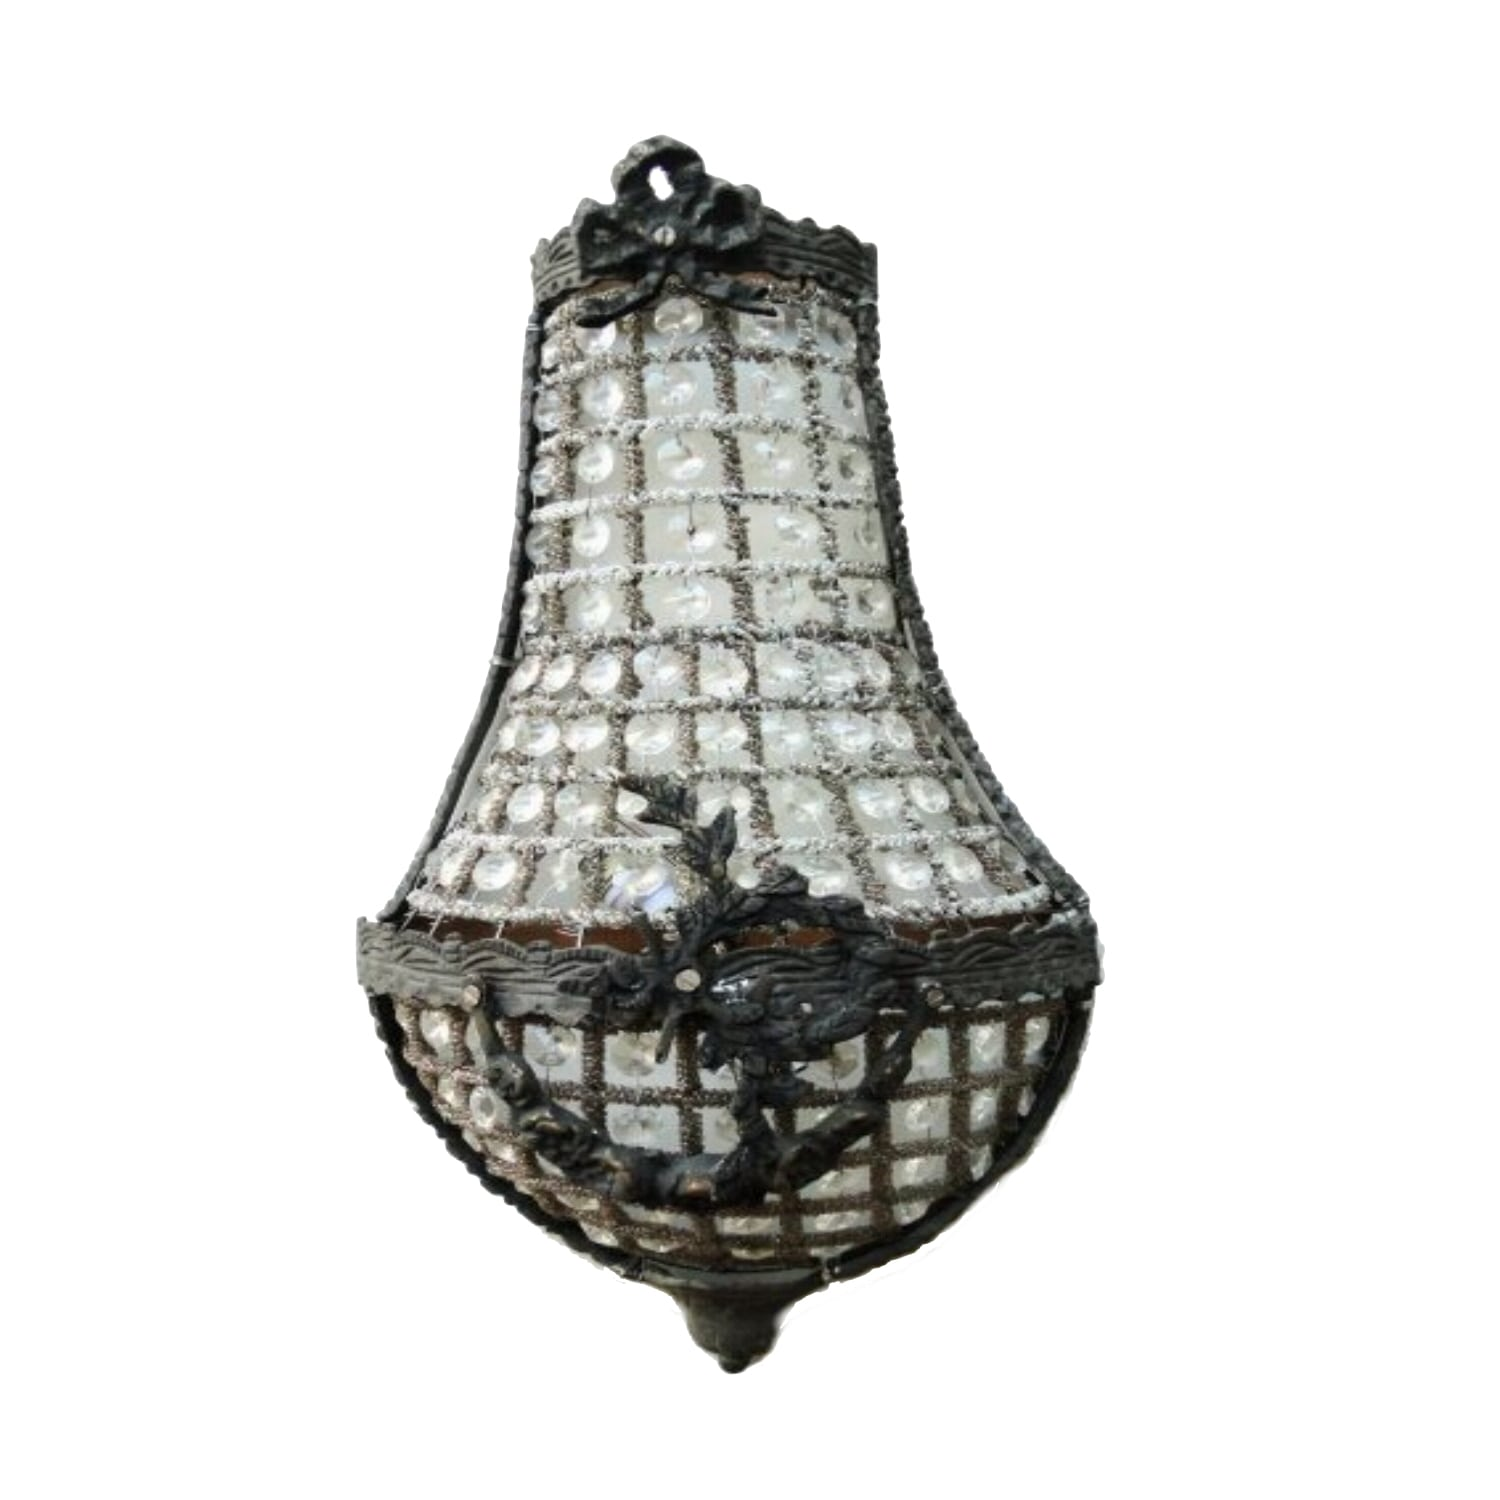 European Crystal Antique Replica Small Wall Sconce Light Fixture Cau Mansion